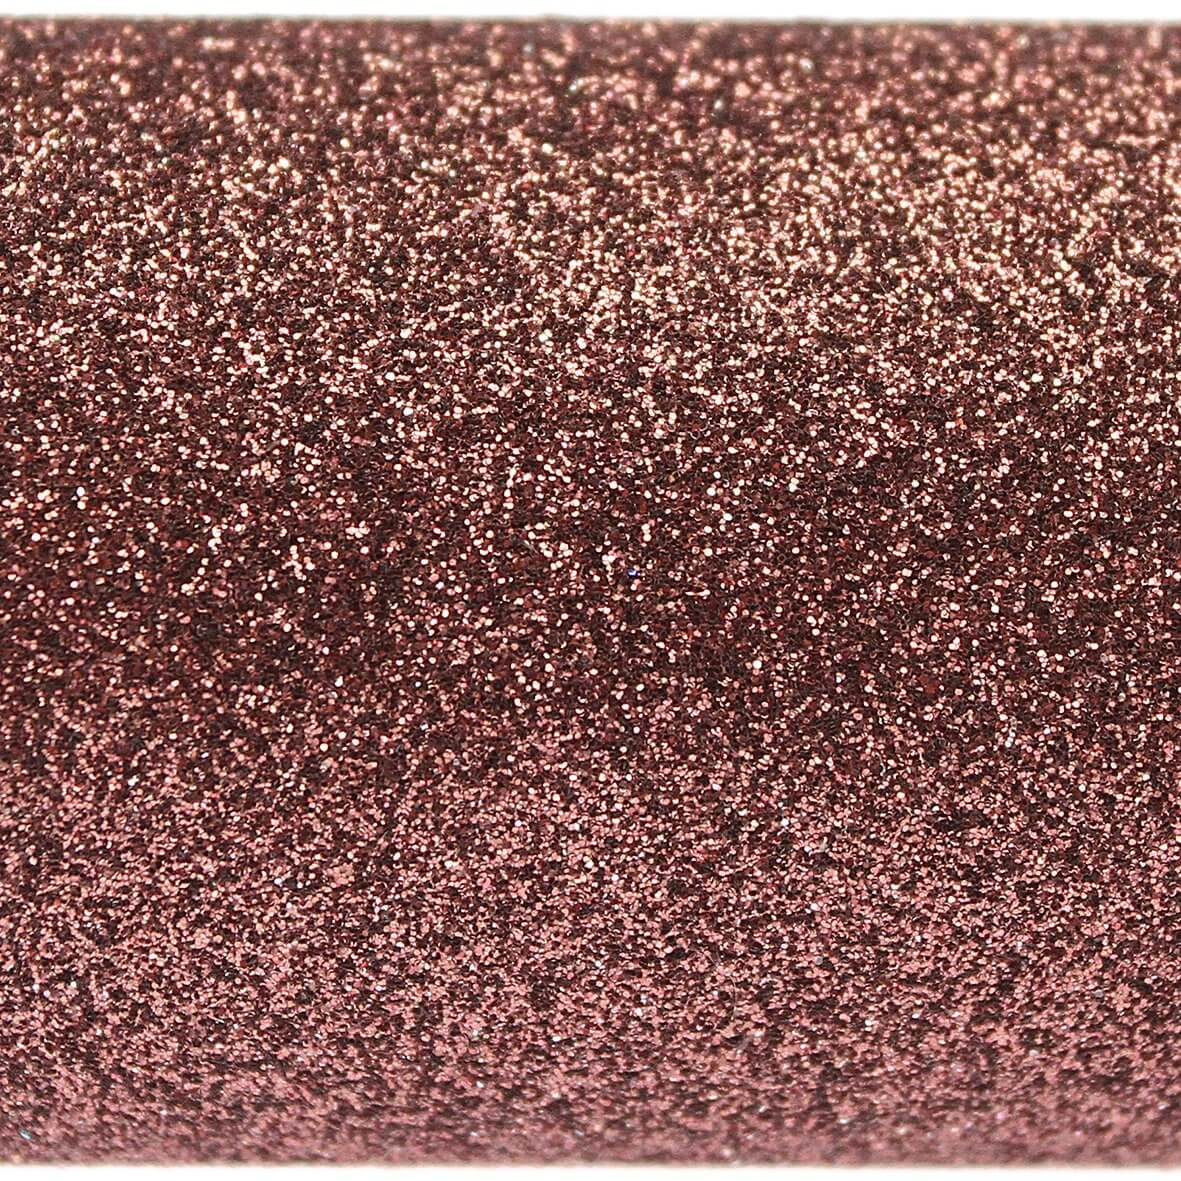 Chocolate Brown A4 Glitter Paper - Close Up